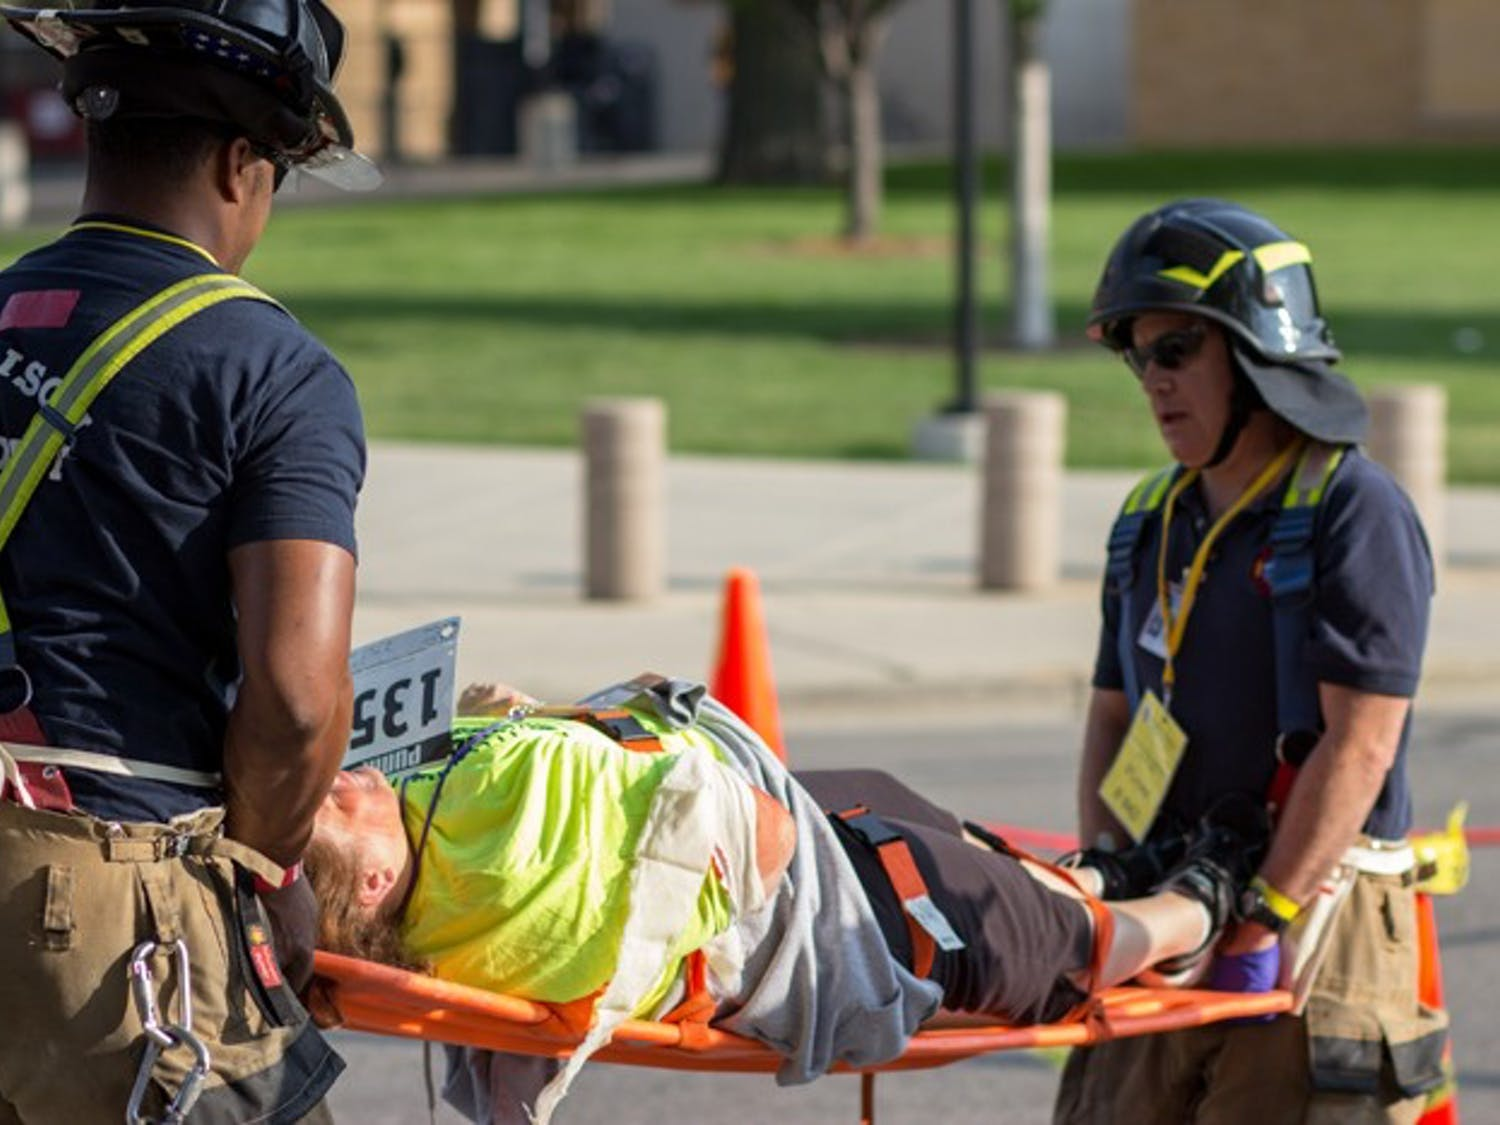 The University of Wisconsin-Madison Police Department held a training exercise simulating a bomb detonation at Camp Randall Stadium Thursday, July 17. The event involved hundreds of officers from almost 20 agencies and volunteer actors to simulate injuries and deaths. The university held press conferences to update mock journalists on the situation.